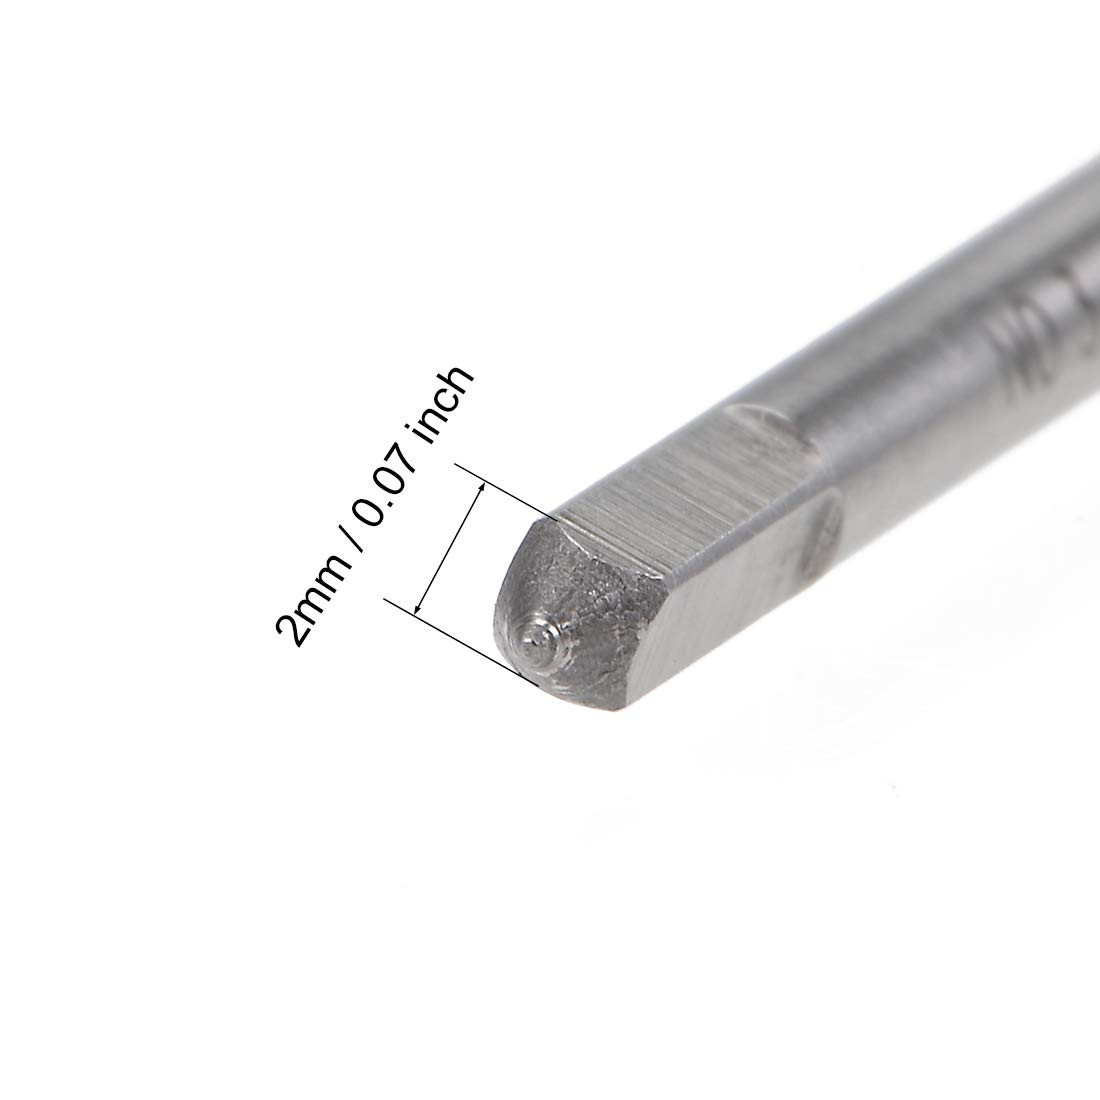 uxcell Machine Tap 2-56 UNC Thread Pitch 2A 3 Flutes High Speed Steel